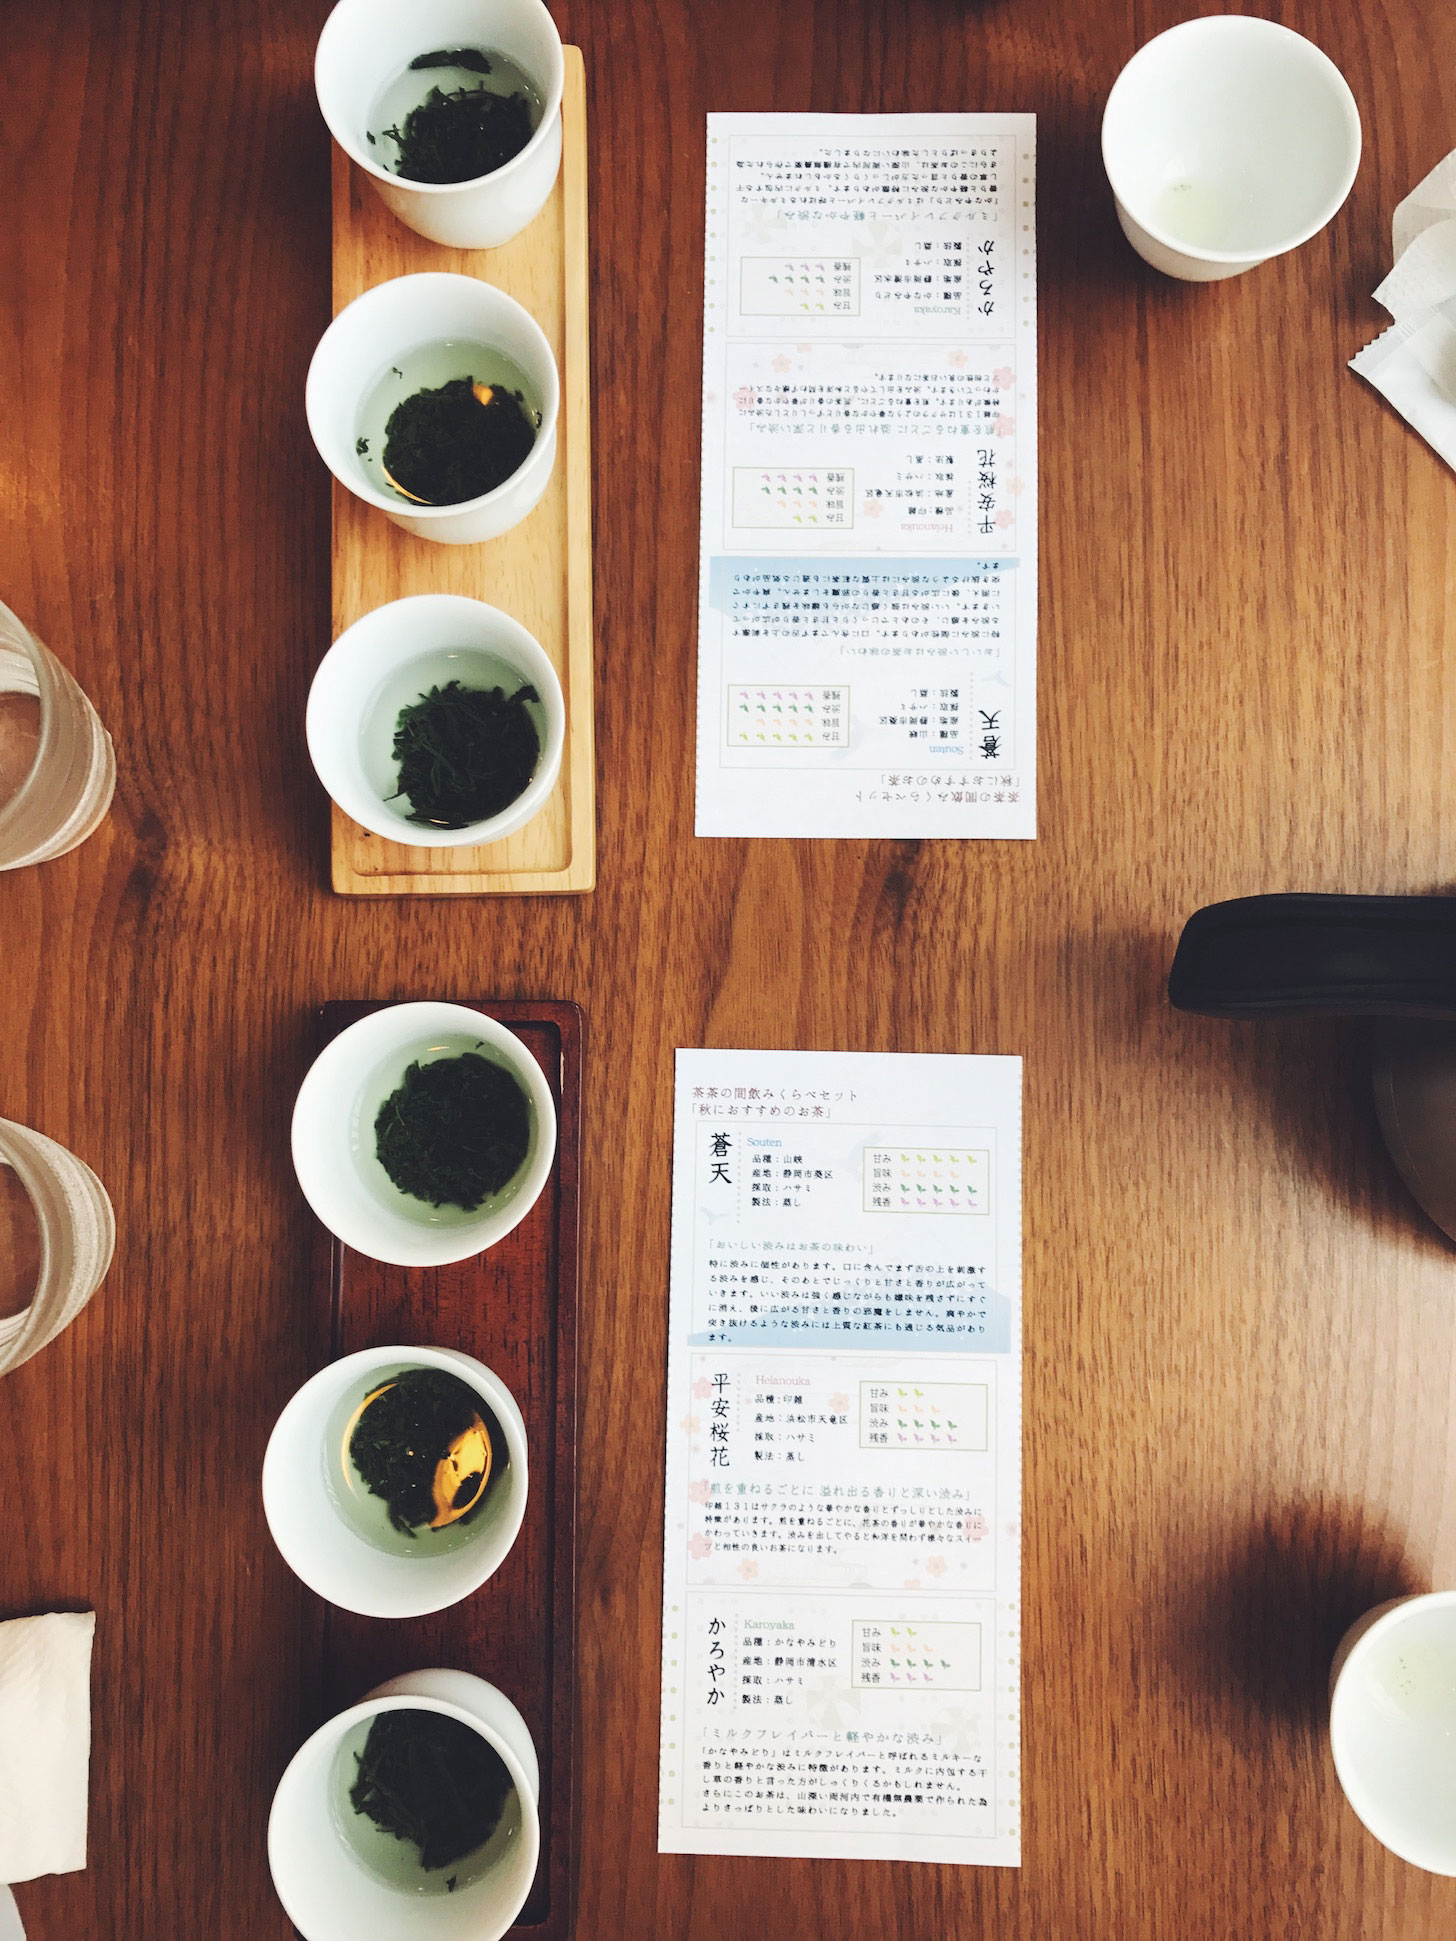 Different types of green tea at a tea shop in Tokyo